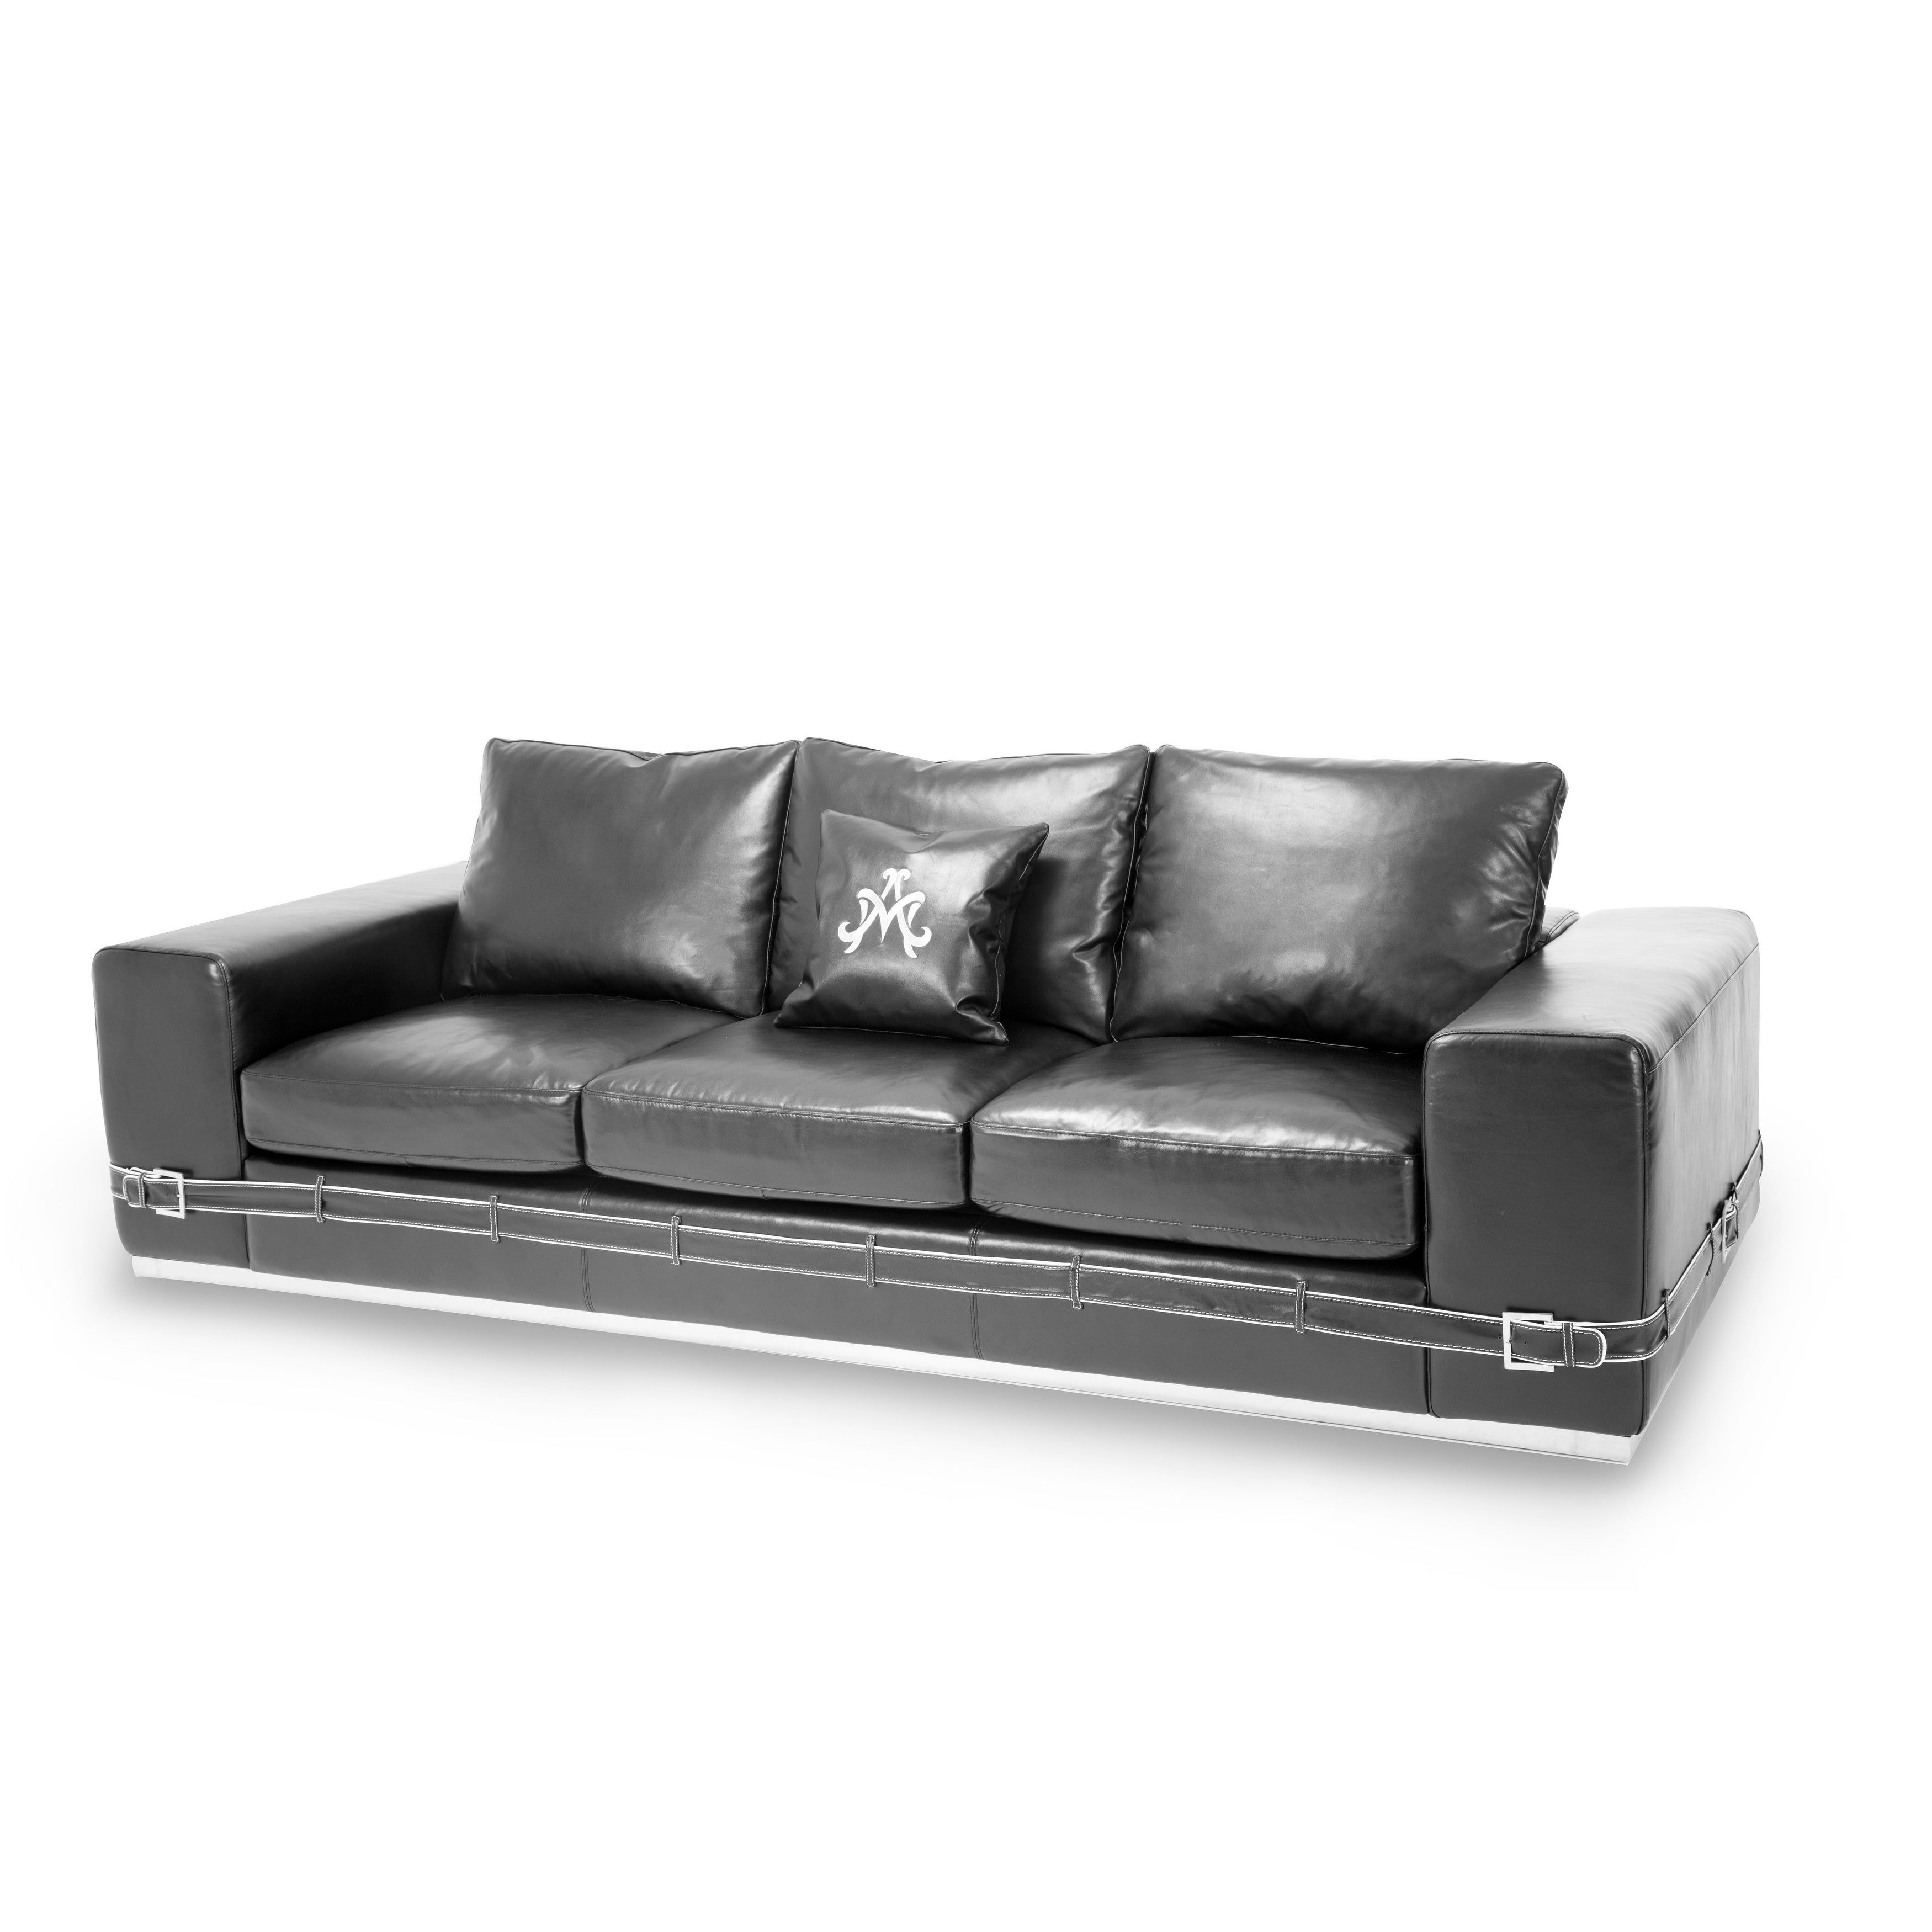 Ciras Black Leather Mansion Sofa Michael Amini